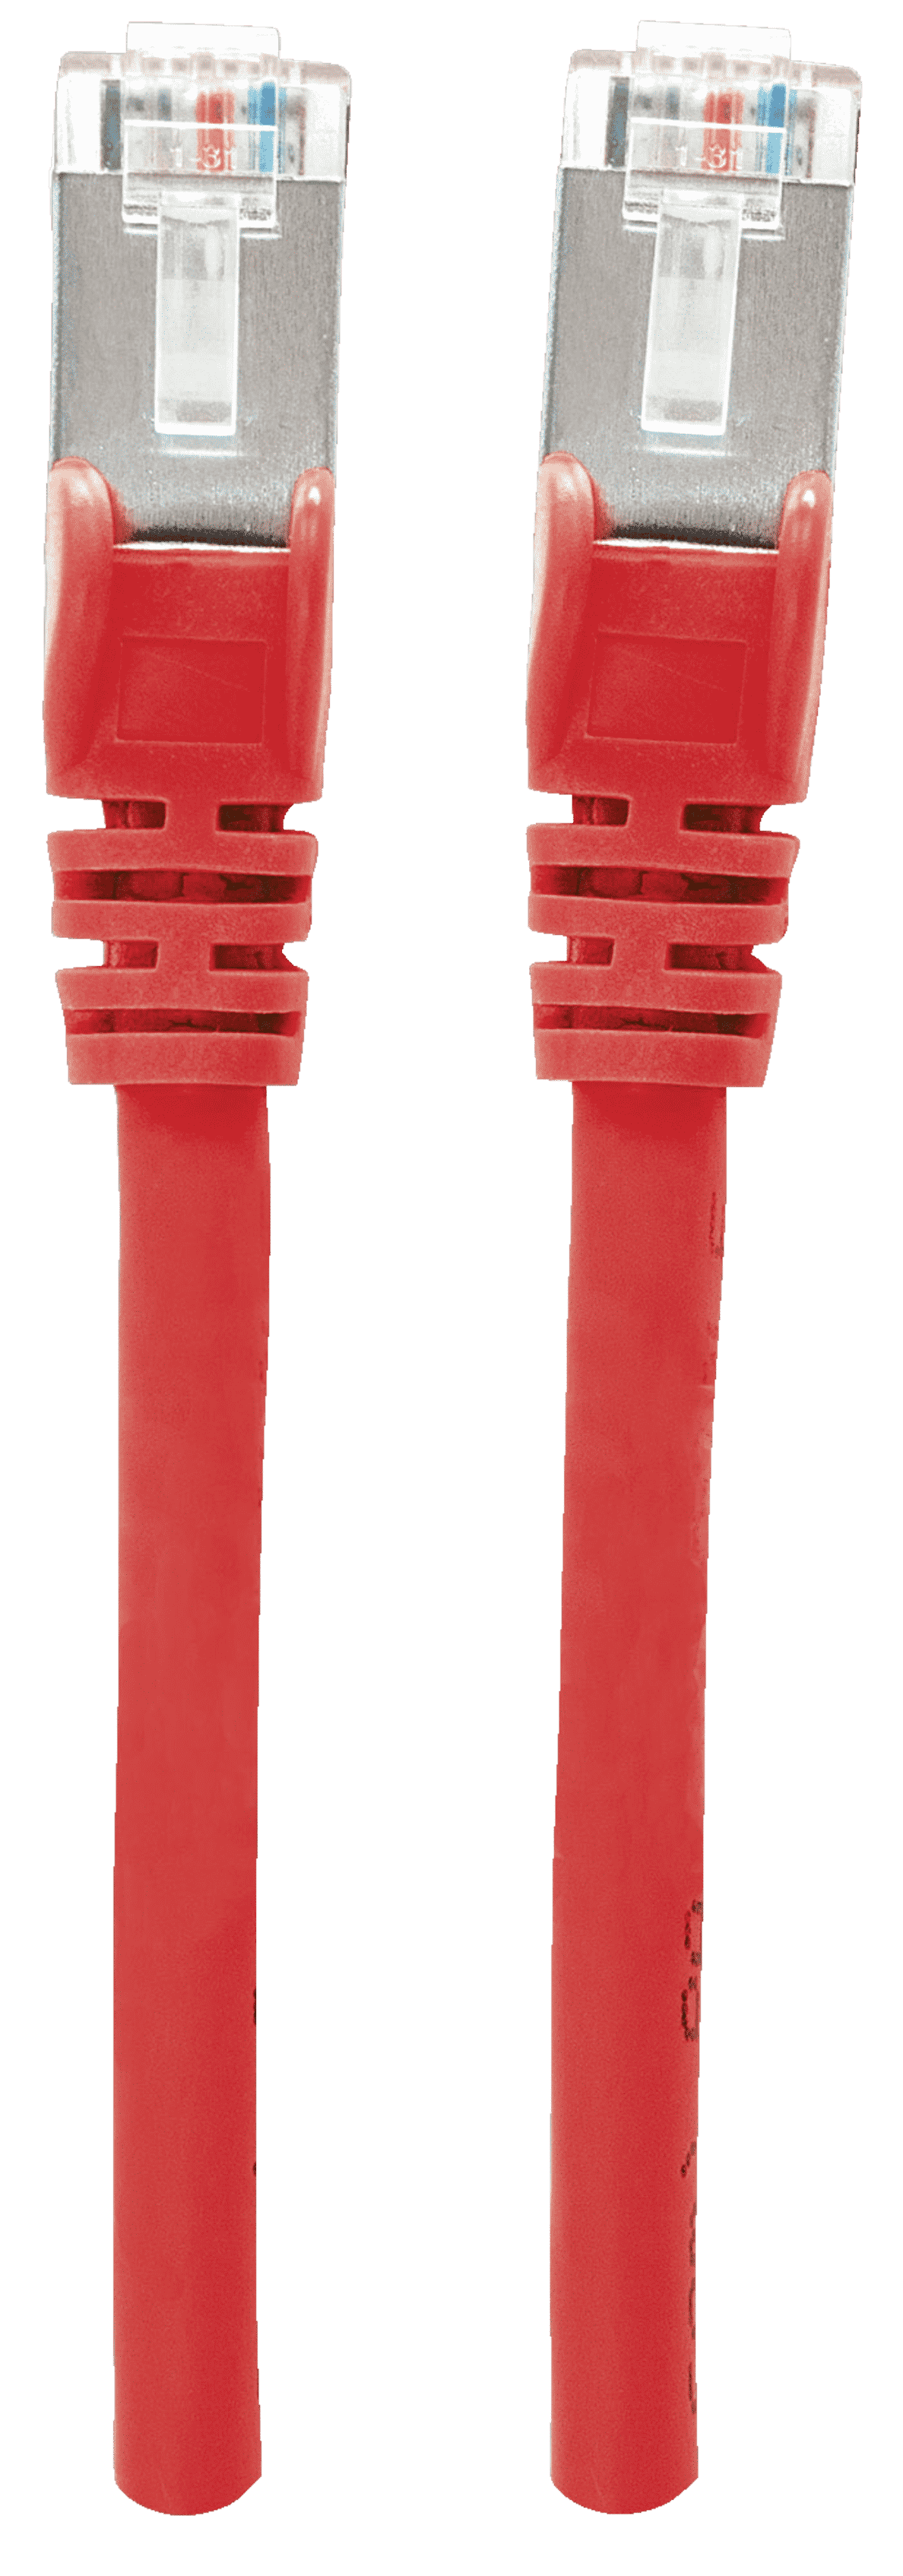 INTELLINET  319249 Patchkabel 30 m in Rot | 00766623319249